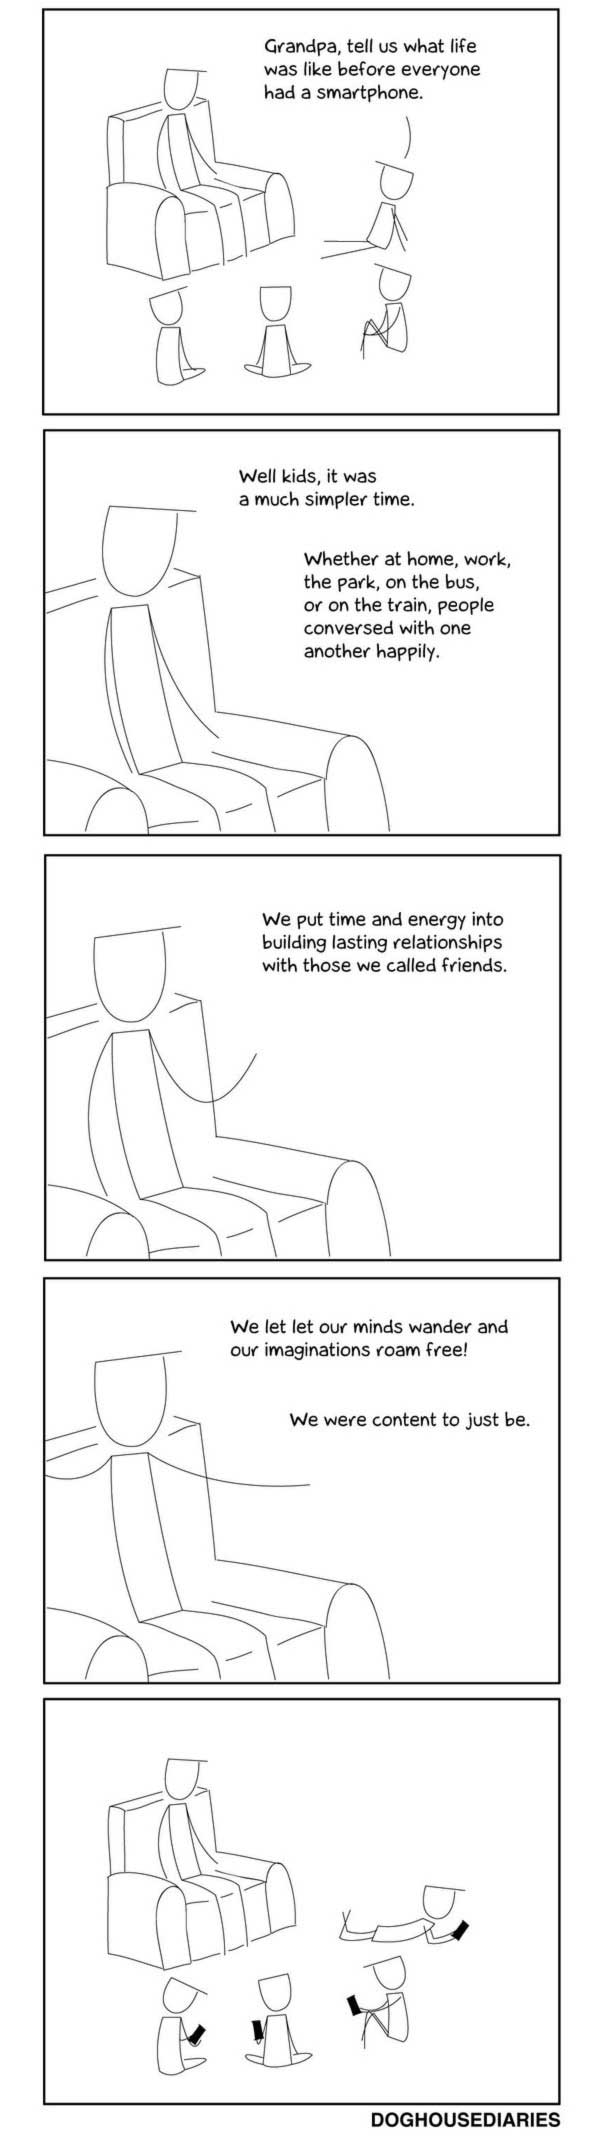 These-22-Cartoons-Illustrate-How-Smartphones-Are-The-Death-Of-Conversation-3212